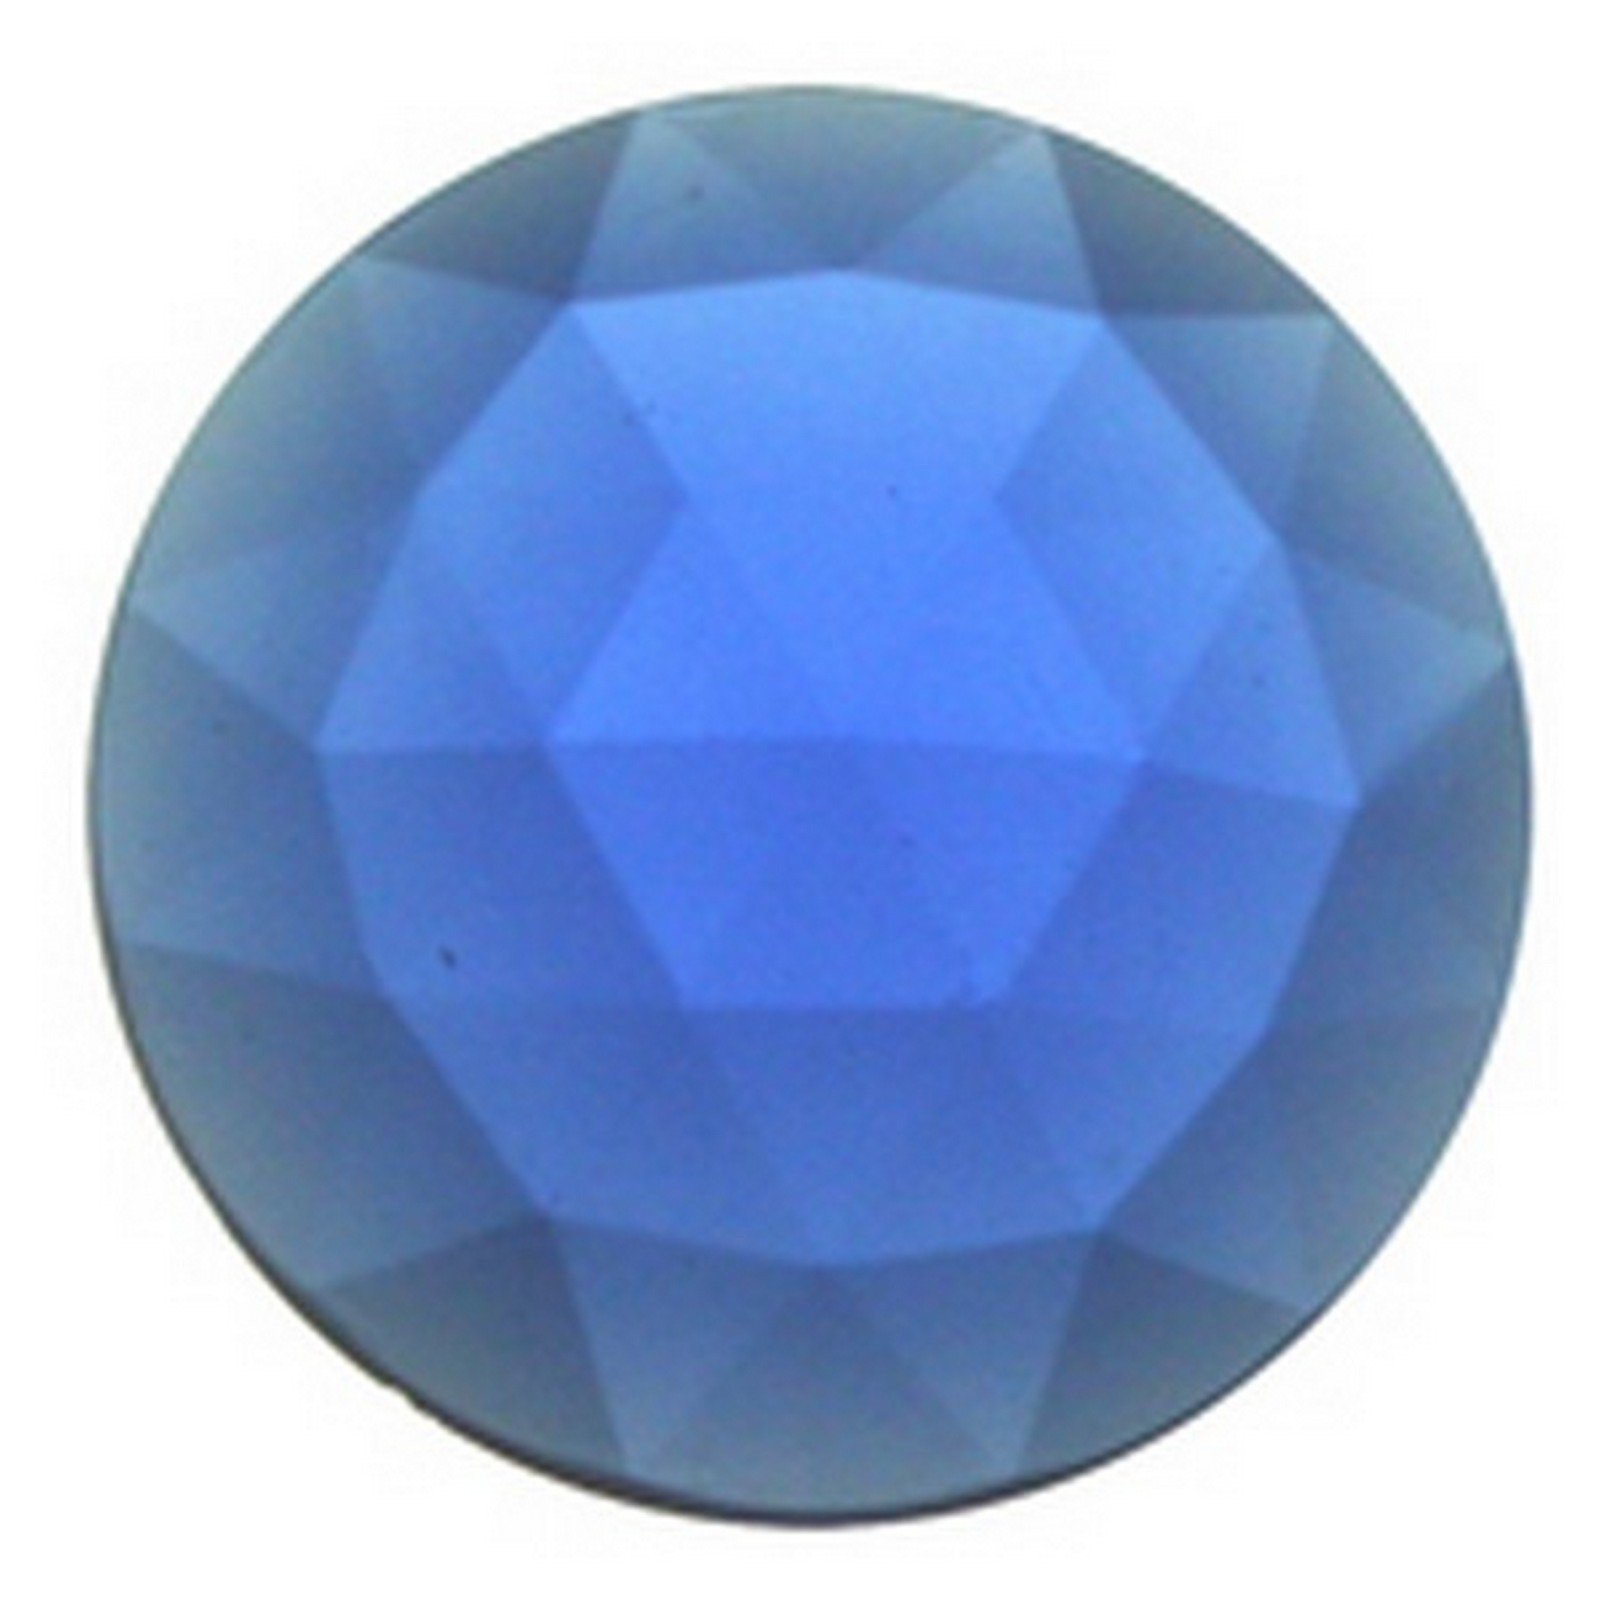 Stained Glass Jewels - 25mm Round Faceted - Dark Blue (Pack of 4) By Stallings Stained Glass by Stallings Stained Glass